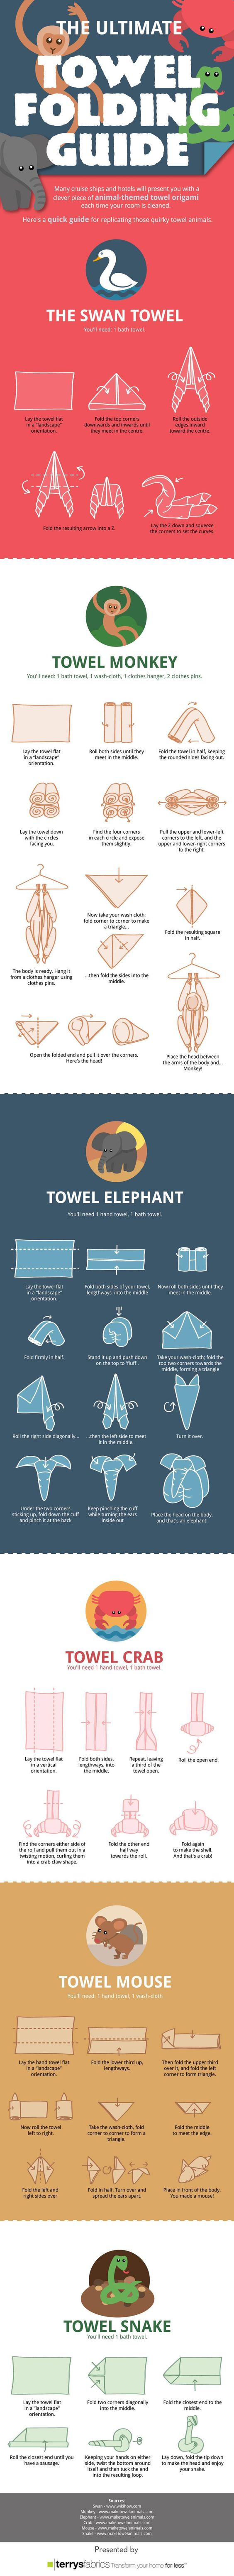 How to fold towels into animals. Maybe this is how you encourage guests to come visit?